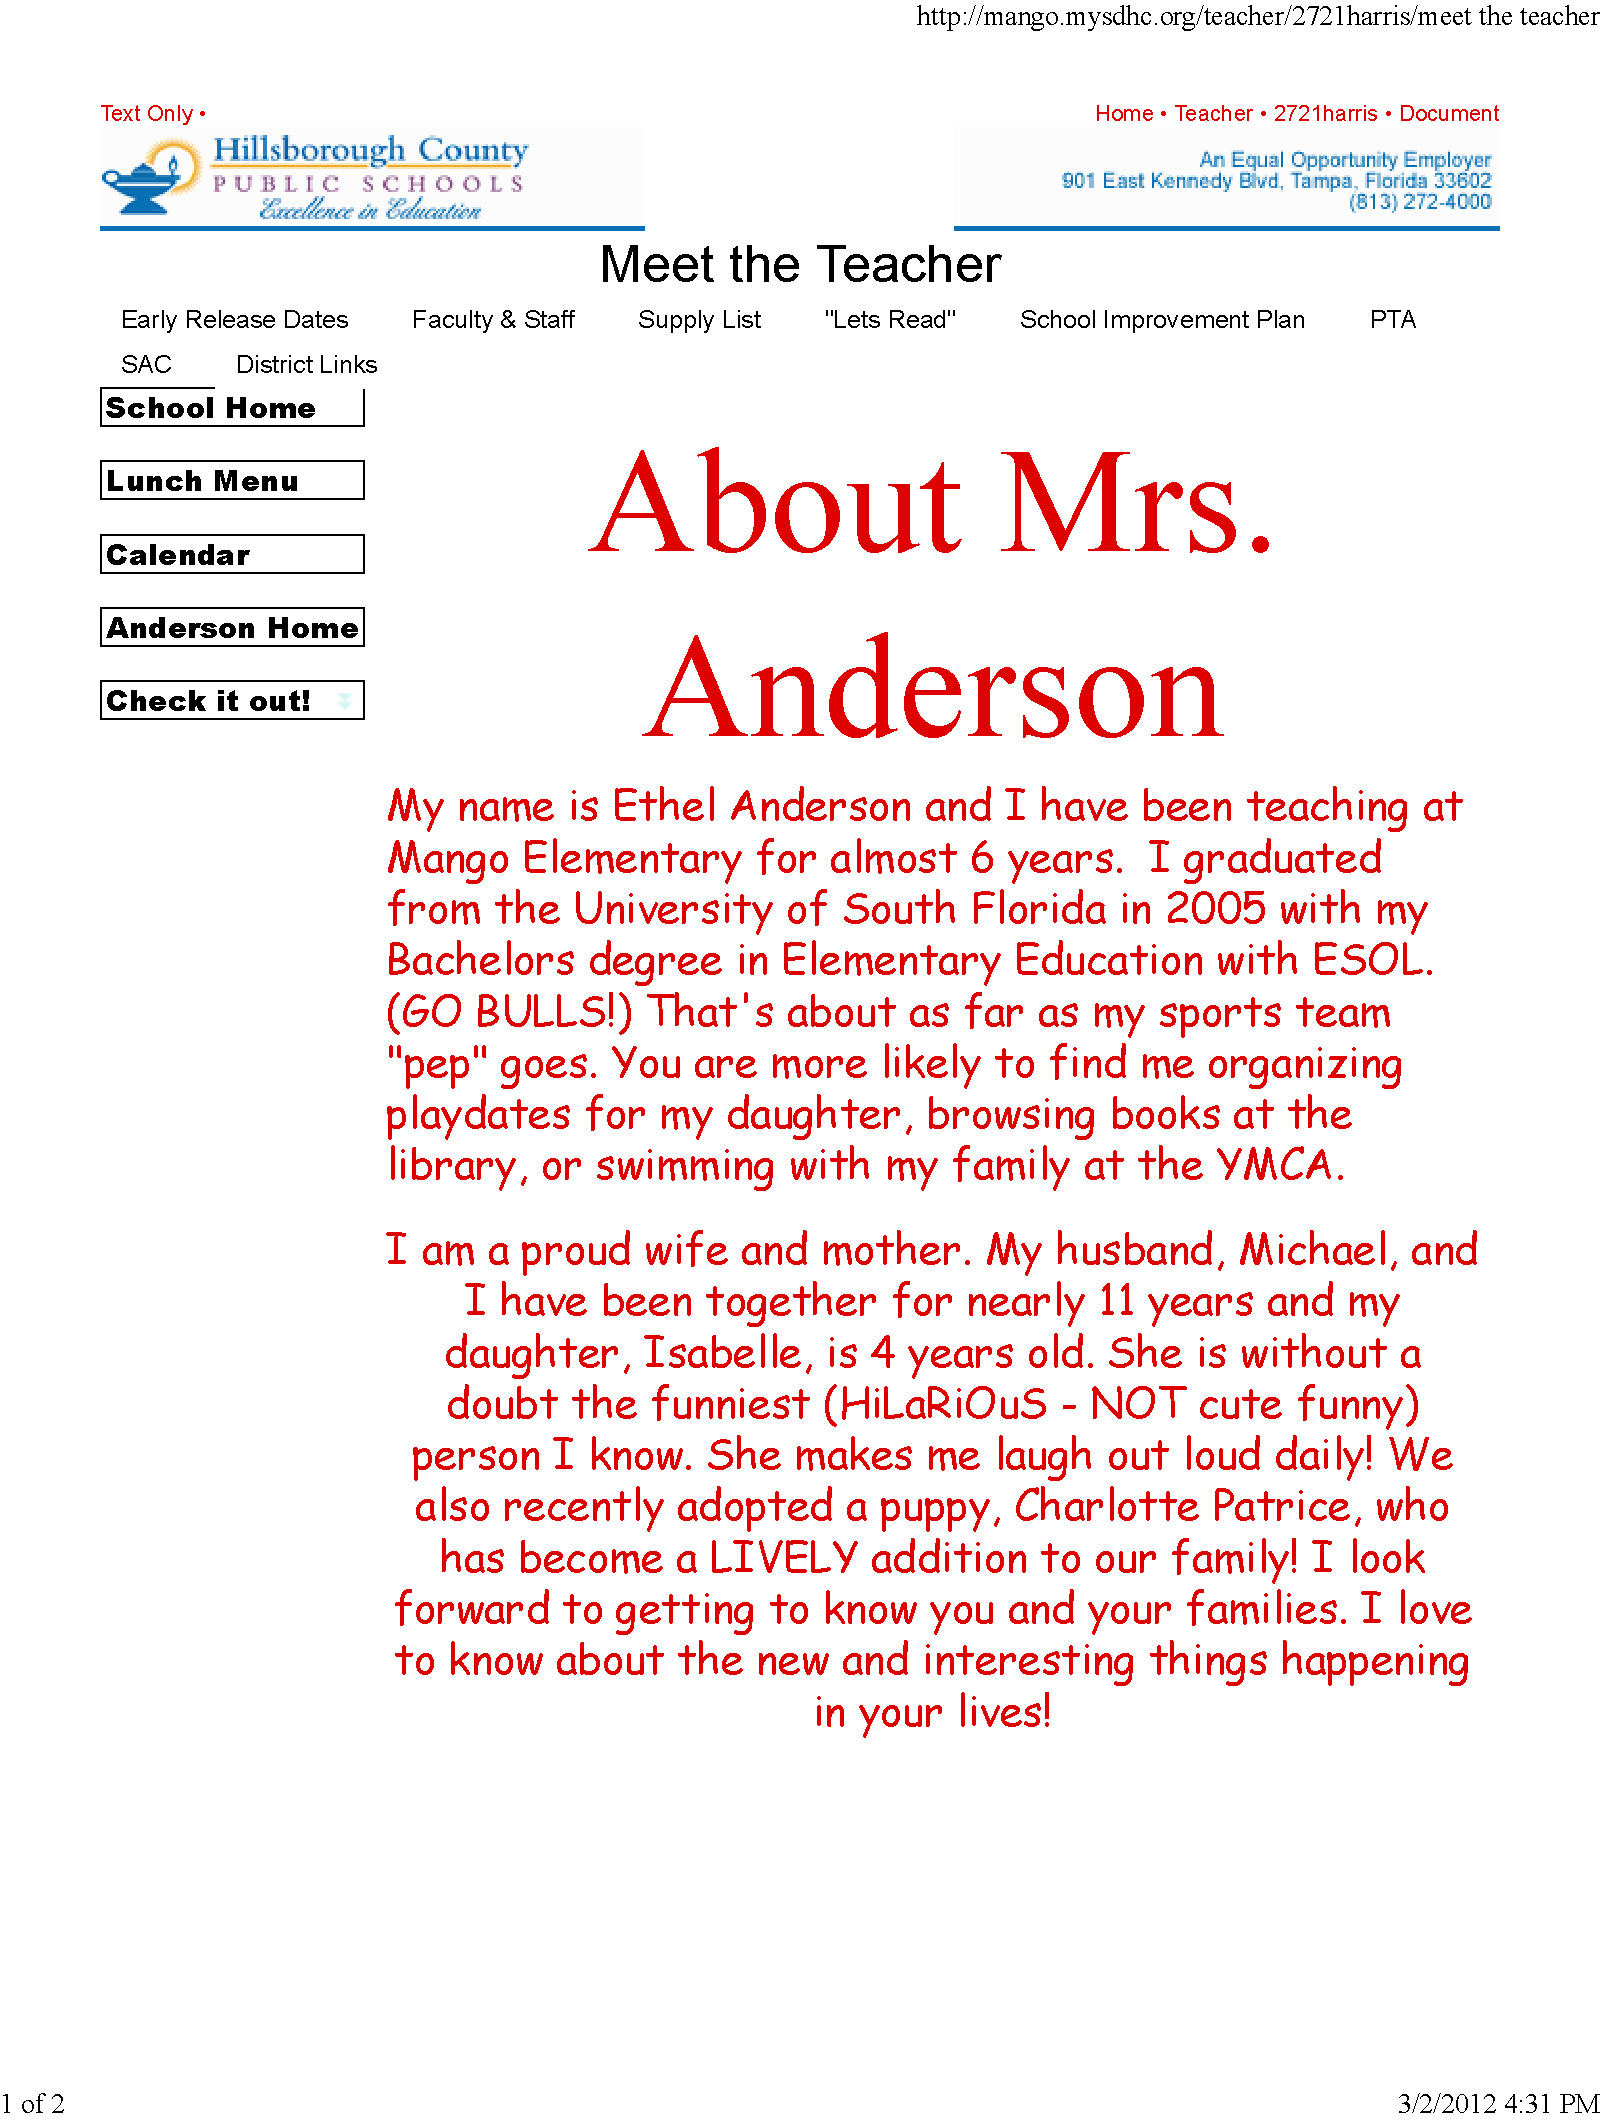 Copy of anderson ethel profile page1.jpg